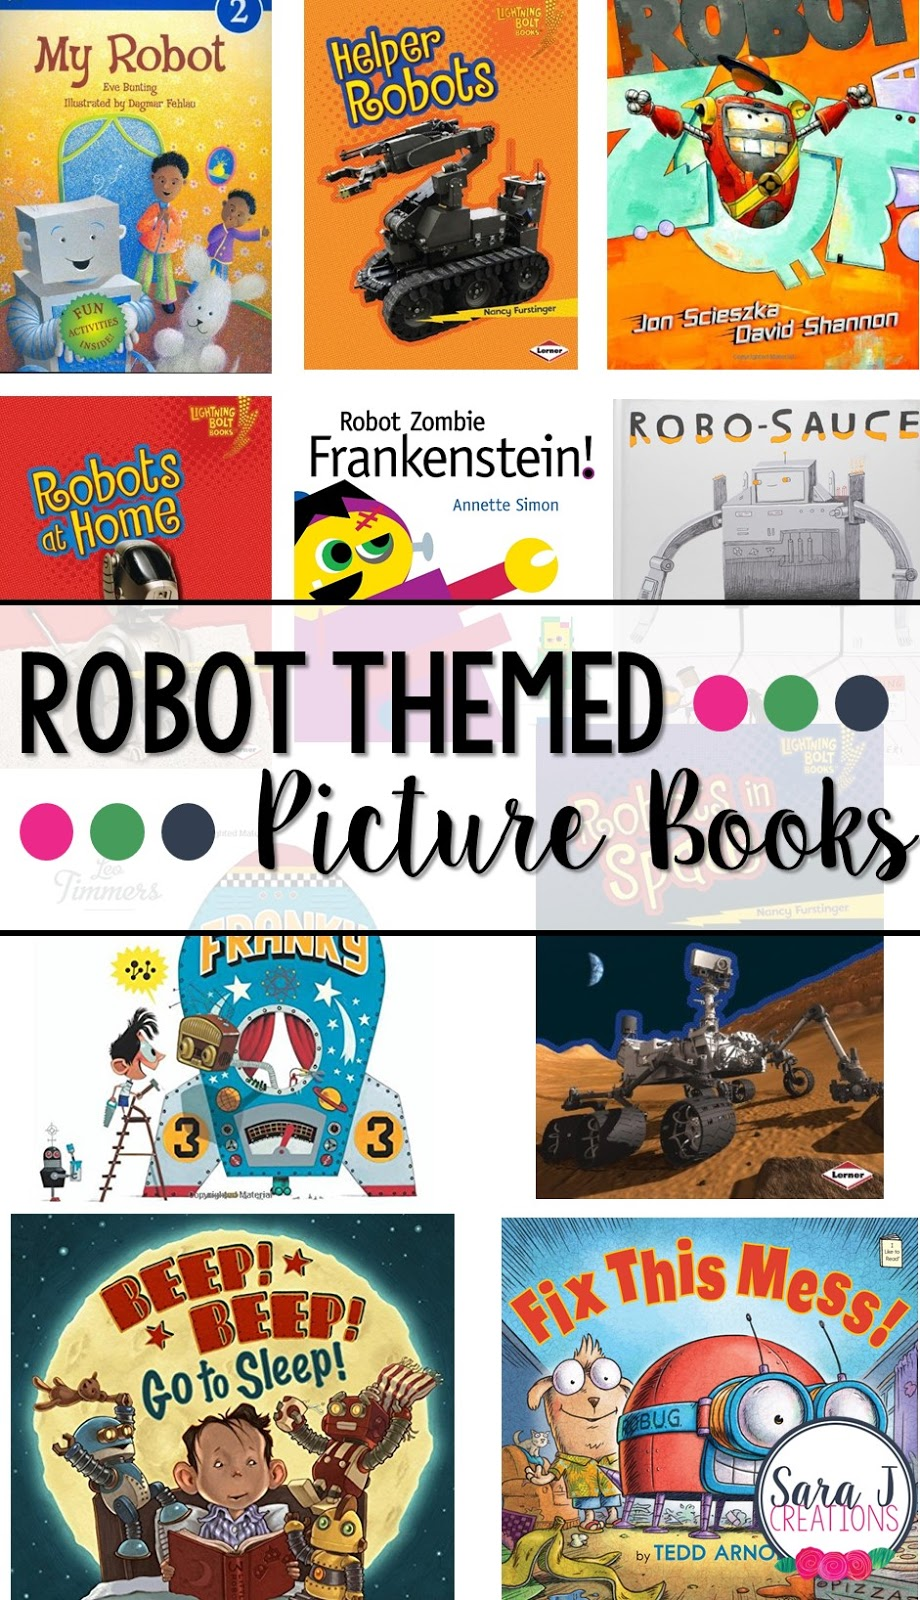 Fun robot books for kids